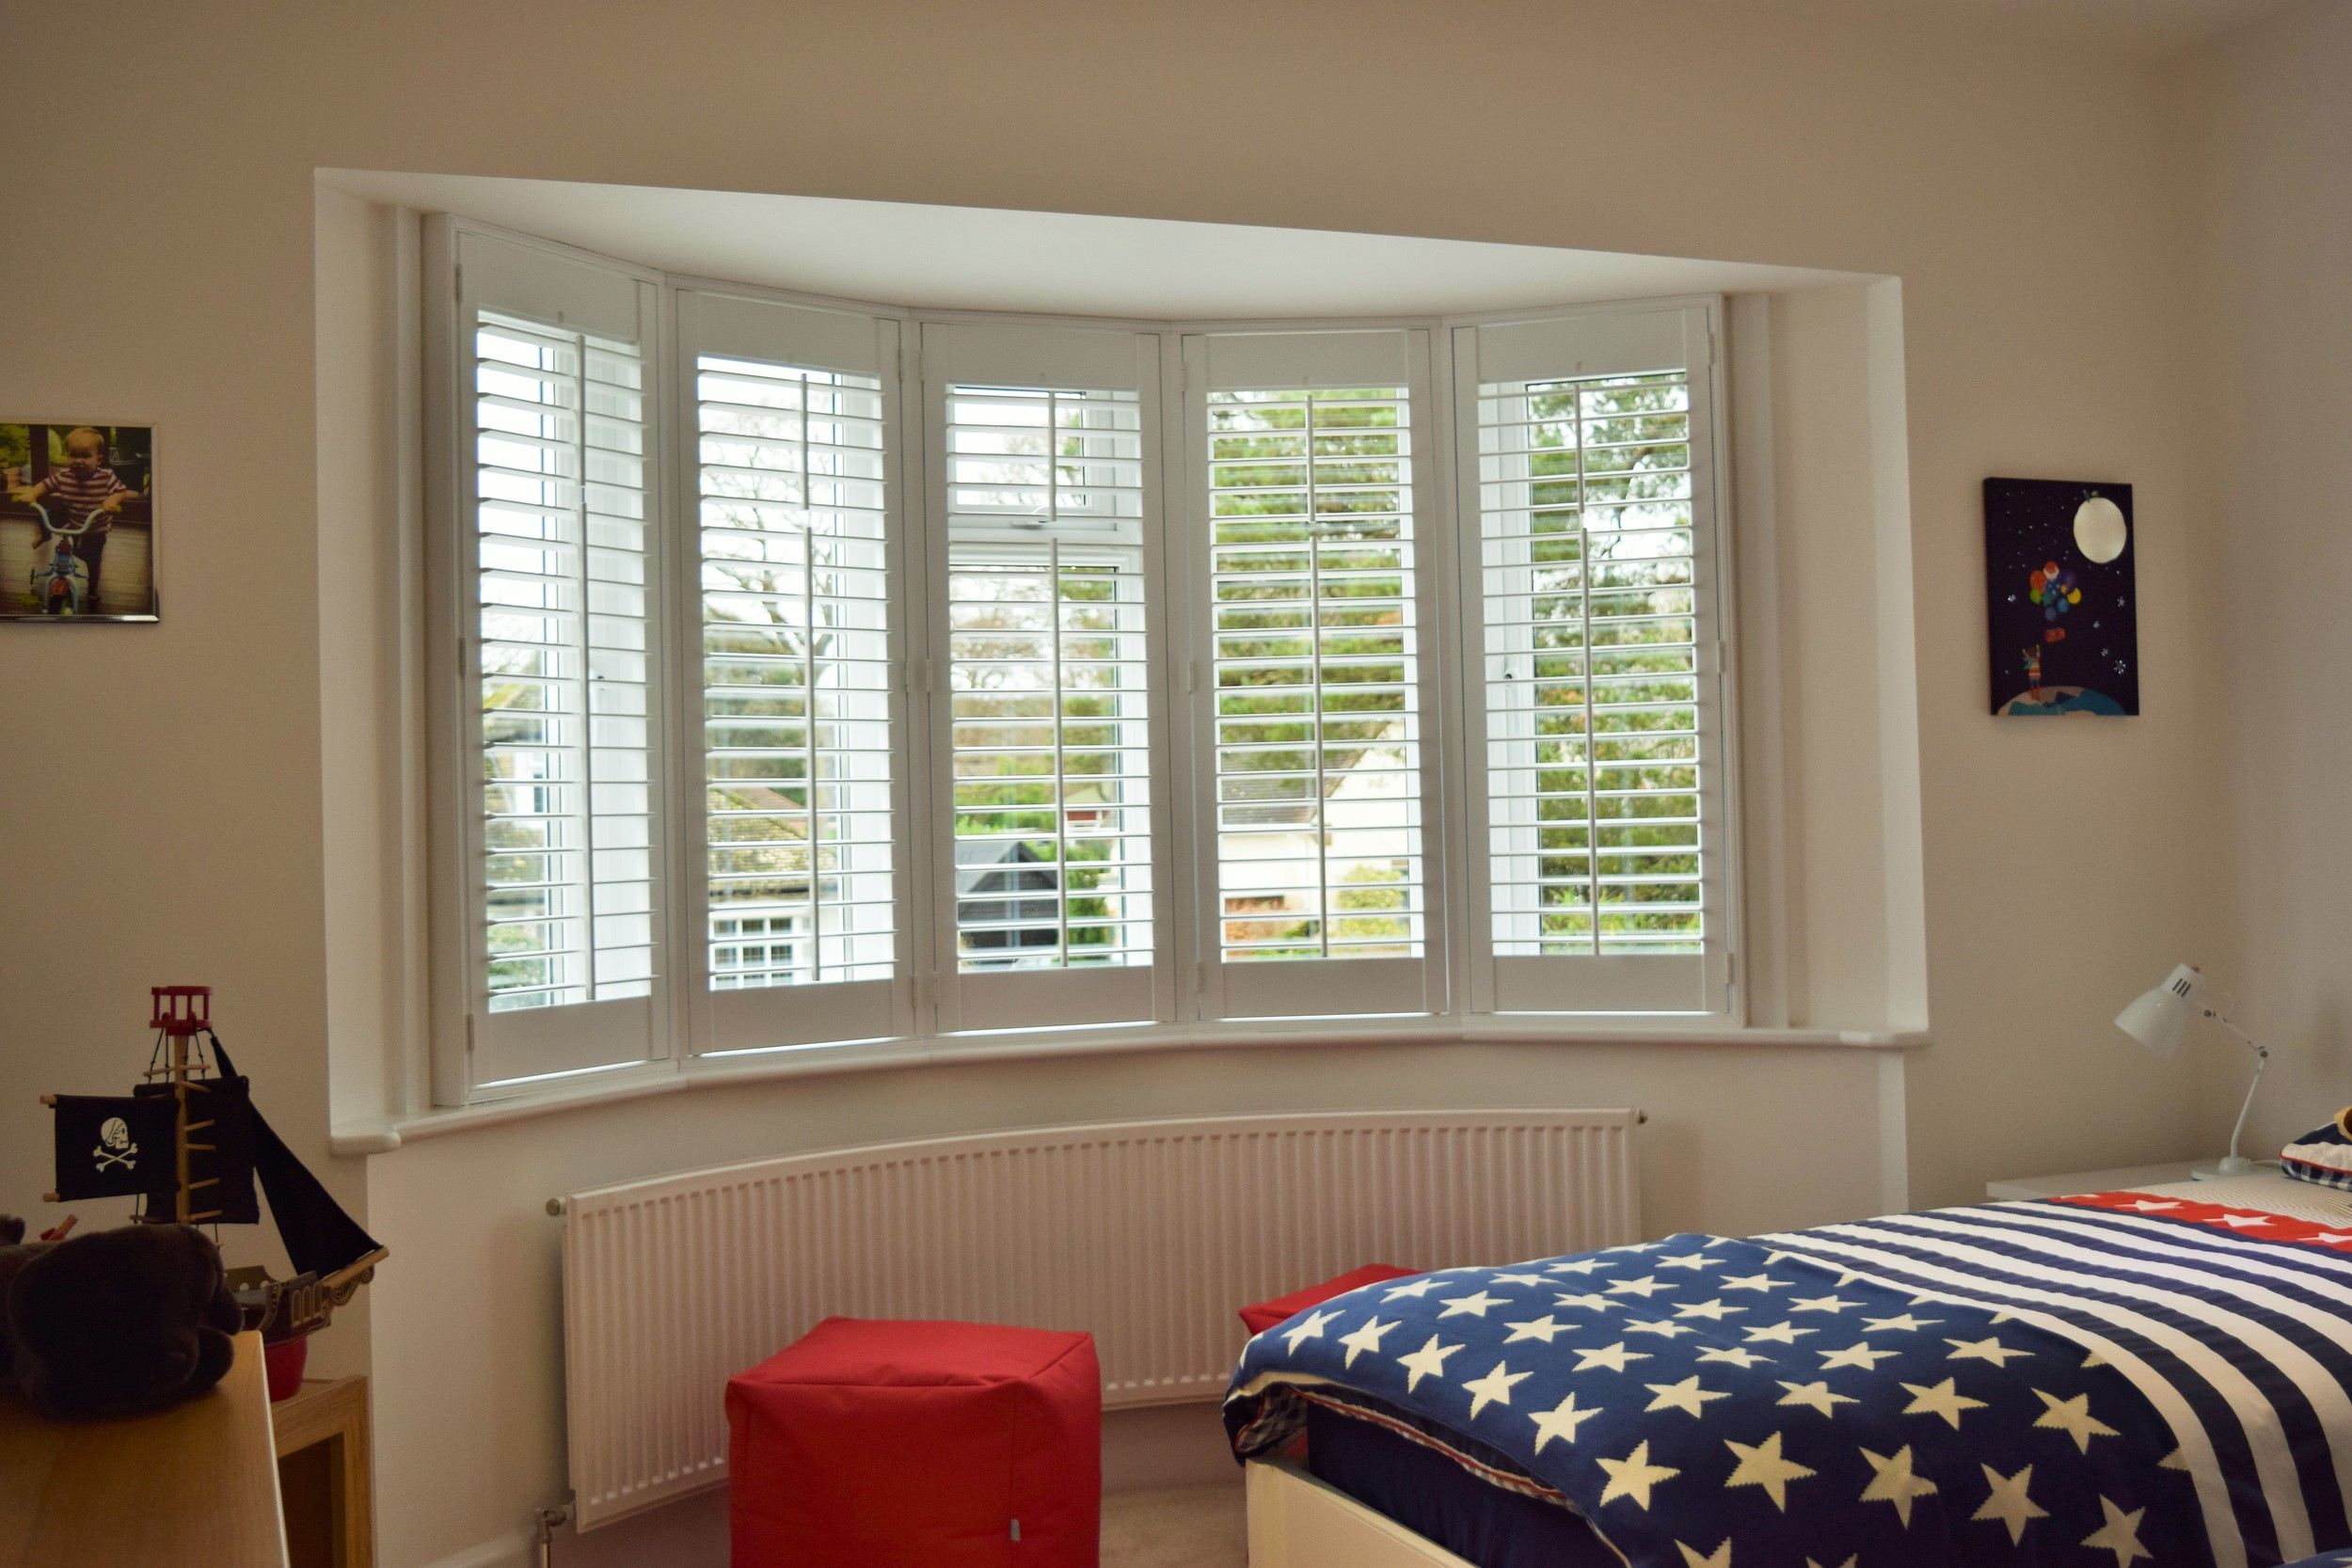 Ideas for window covering in boys room plantation shutters